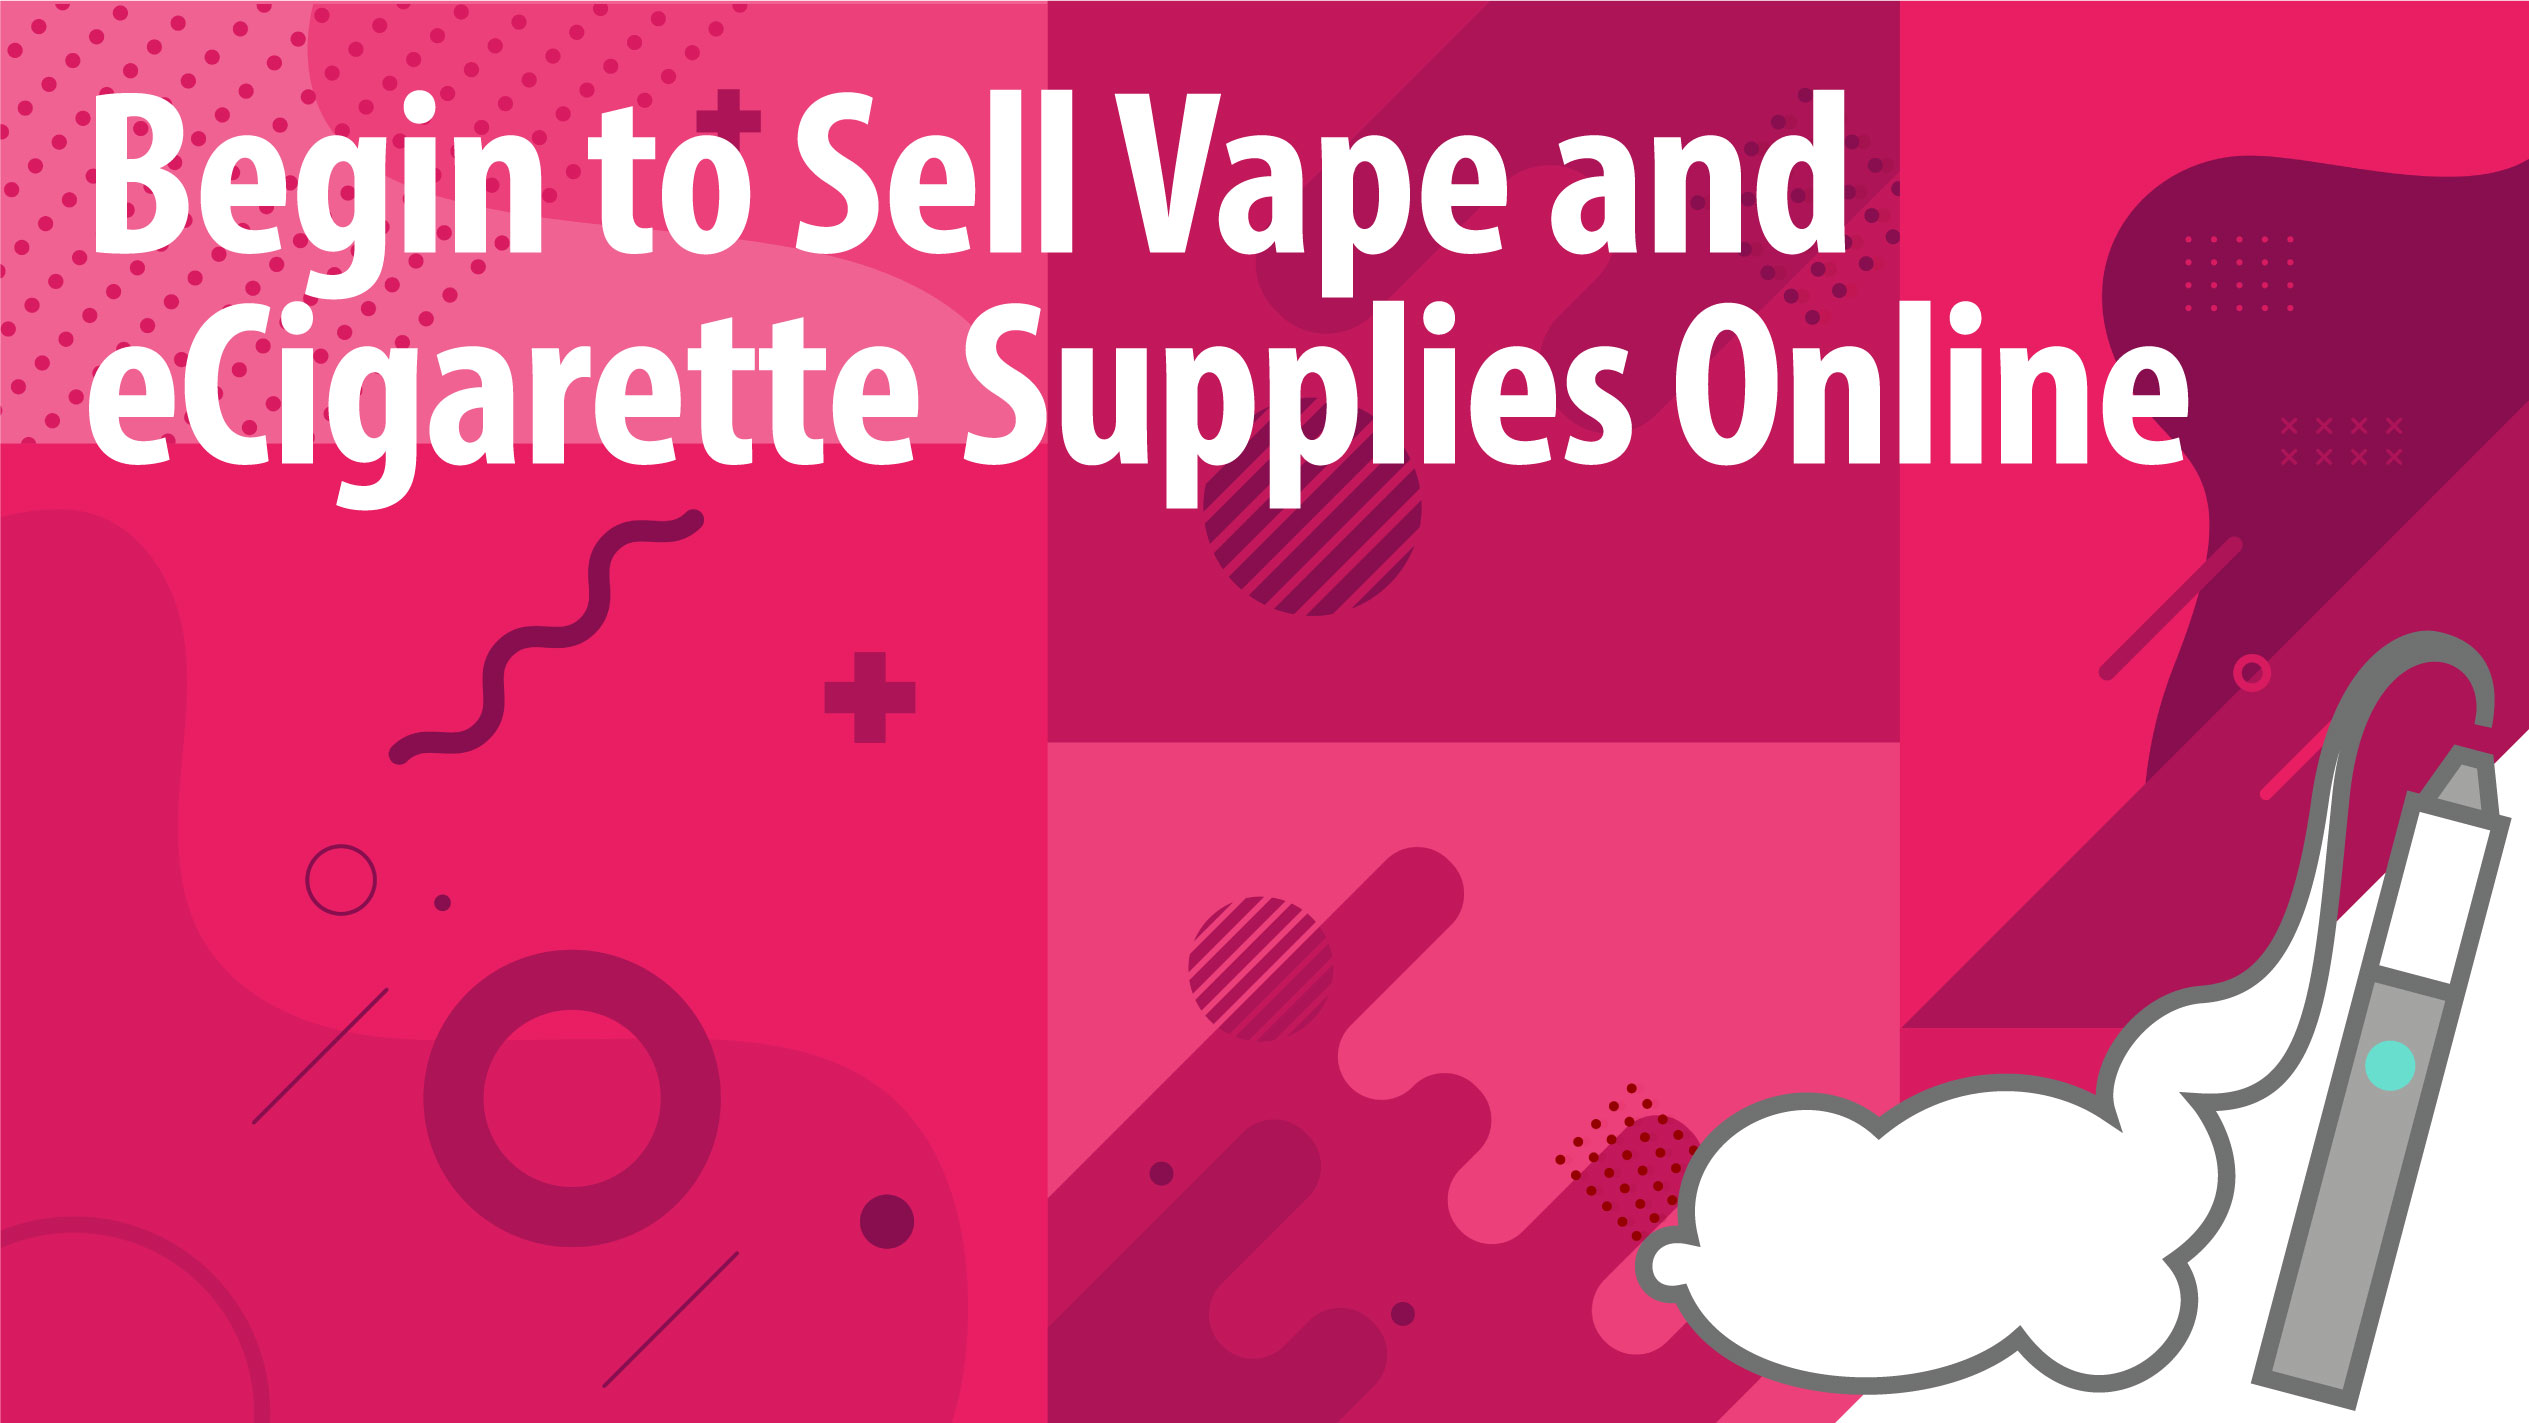 Begin to Sell Vape and e Cigarette Supplies Online